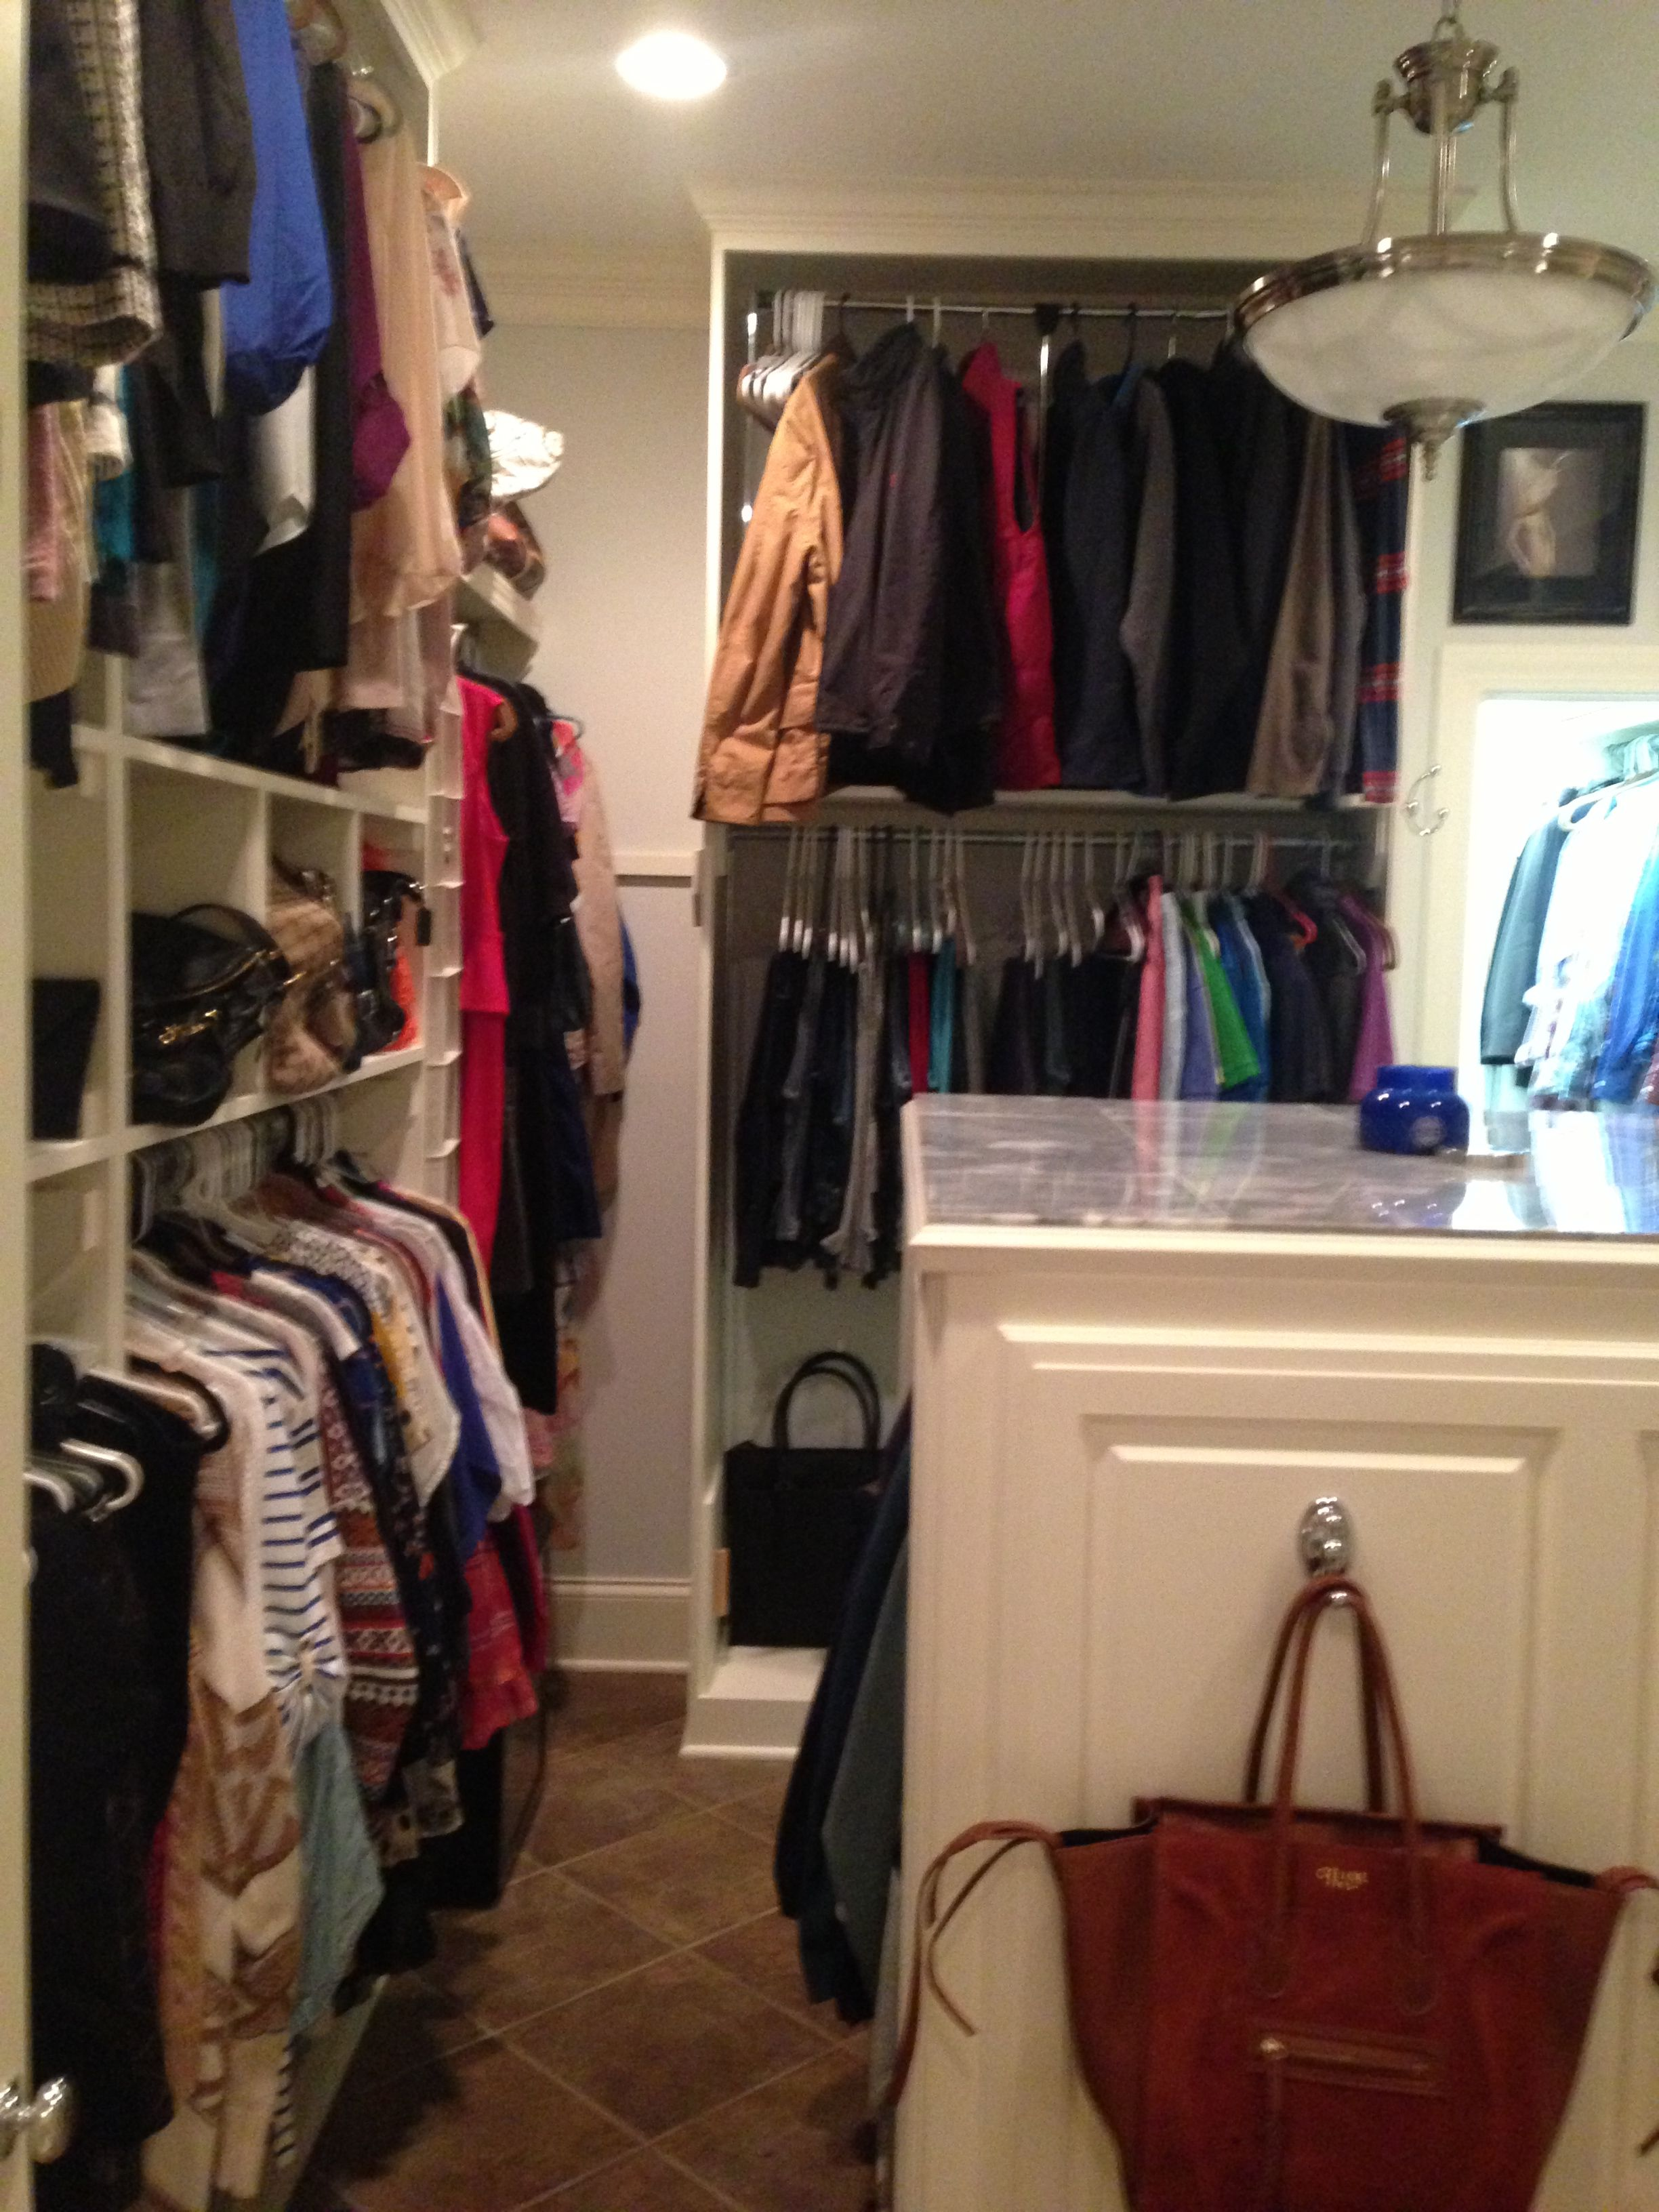 Our huge master bedroom walk-in closet/ shelves/ shoes/ seating/ marble/ Avery Gardens in Jackson, Mississippi